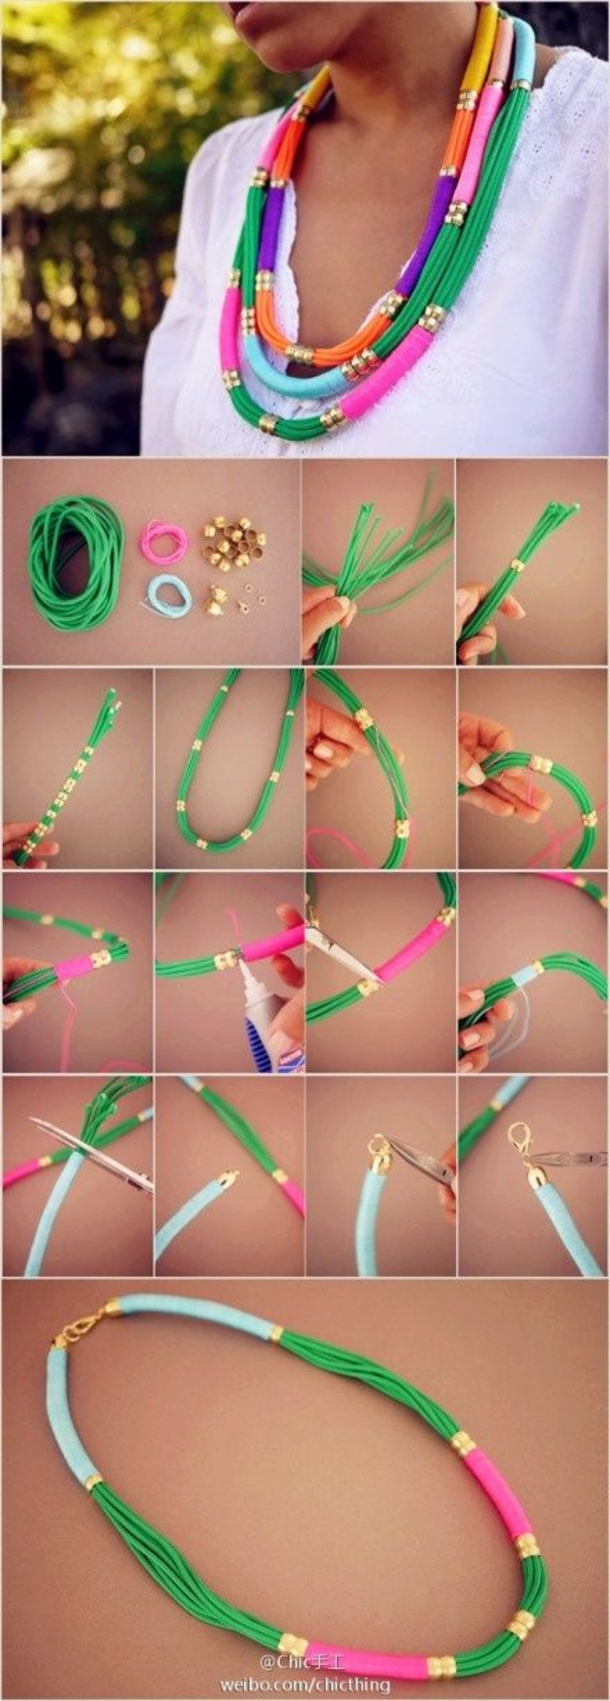 10 really cute diy crafts for girls for Cute easy diy projects